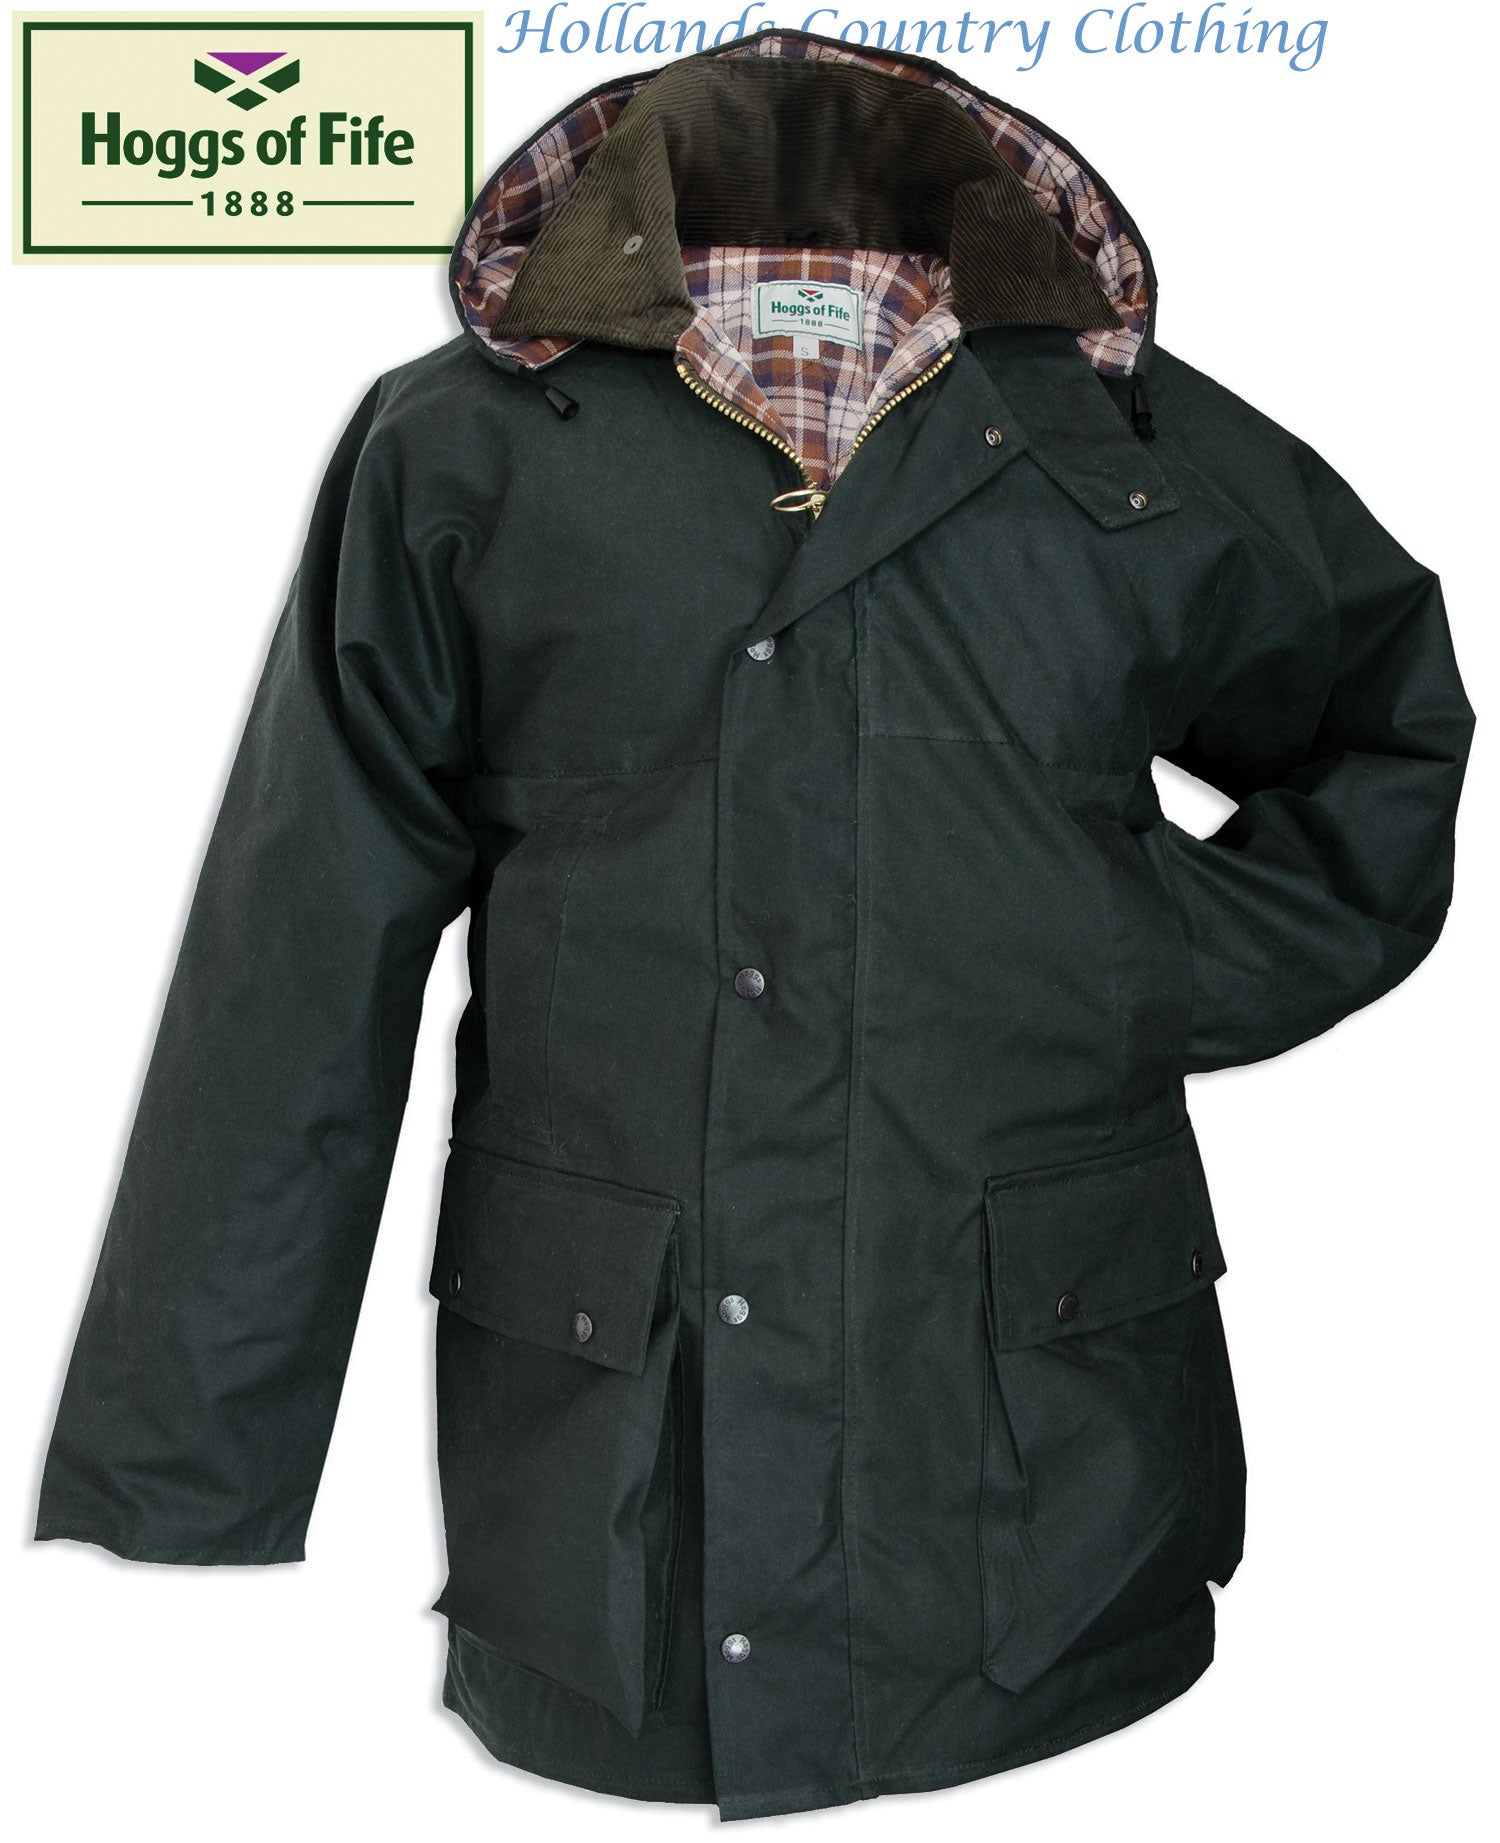 The Hoggs of Fife Padded Waxed Jacket in olive green